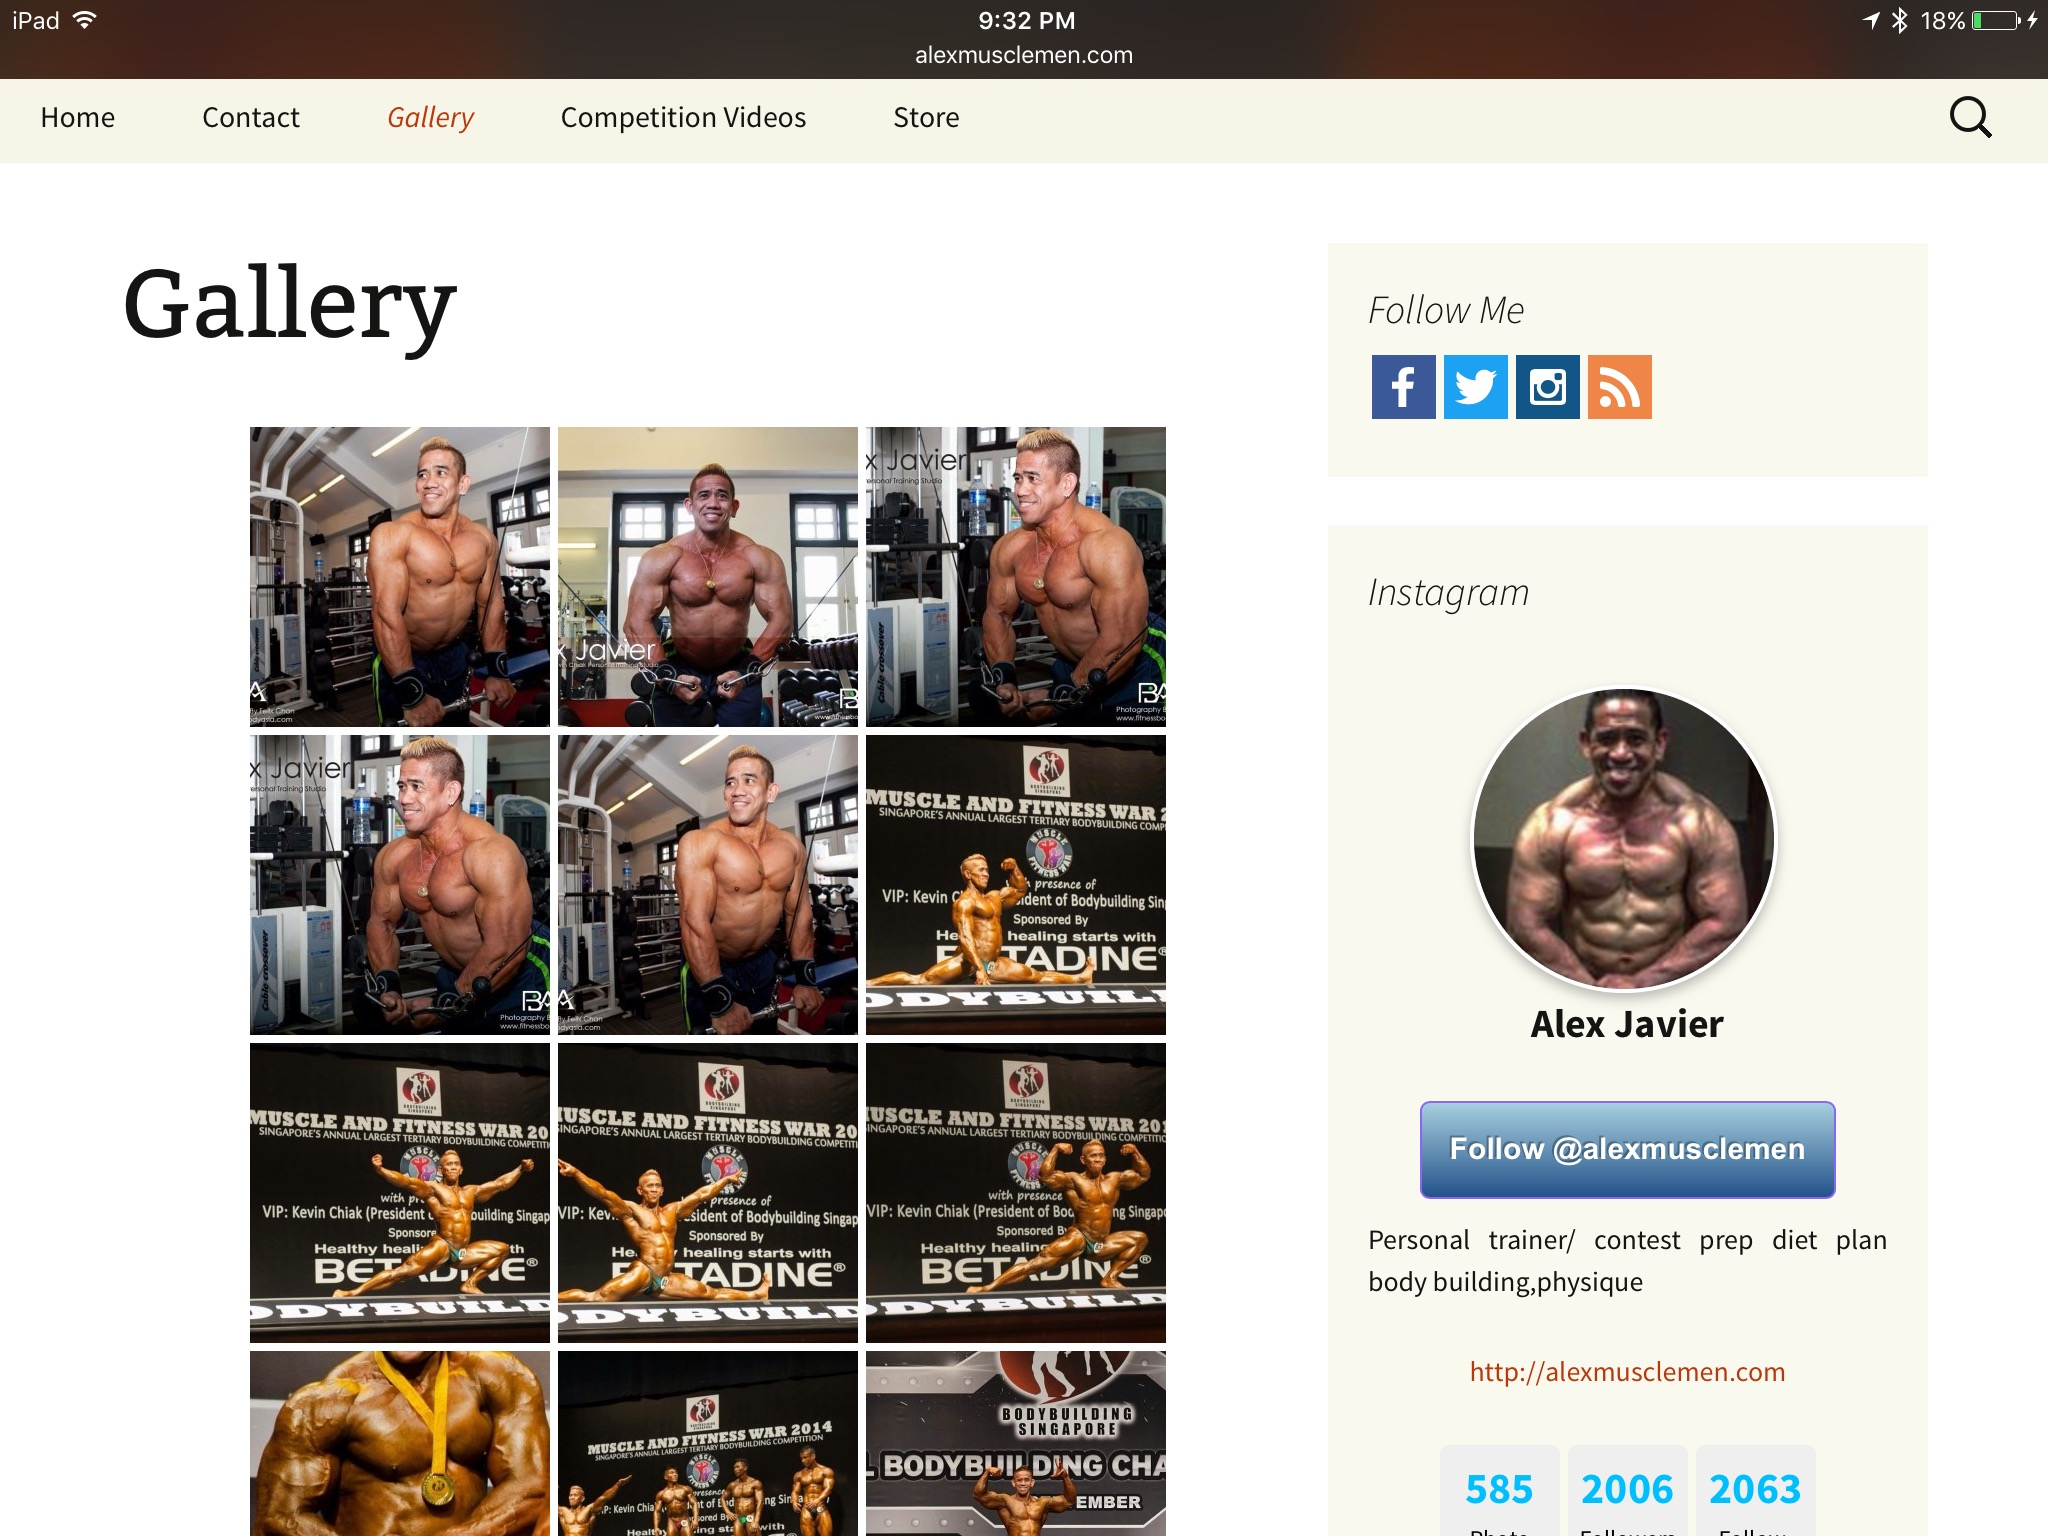 Official website of Alex Javier